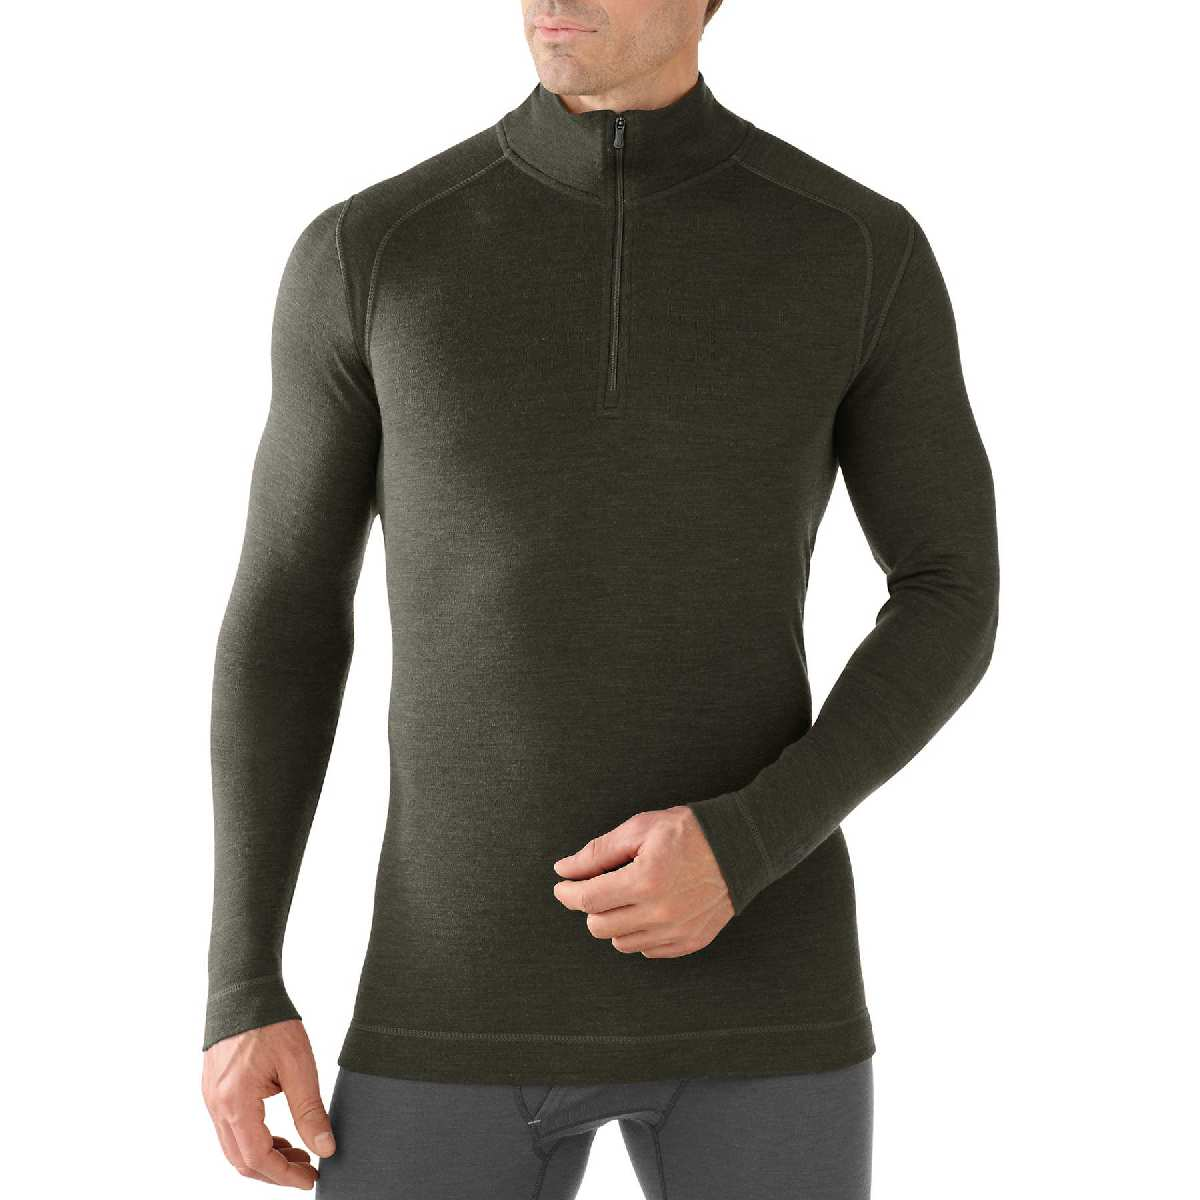 SmartWool NTS Mid 250 Zip T Long Sleeve Base Layer Men's Size L OliveHeather U.S.A. & Canada